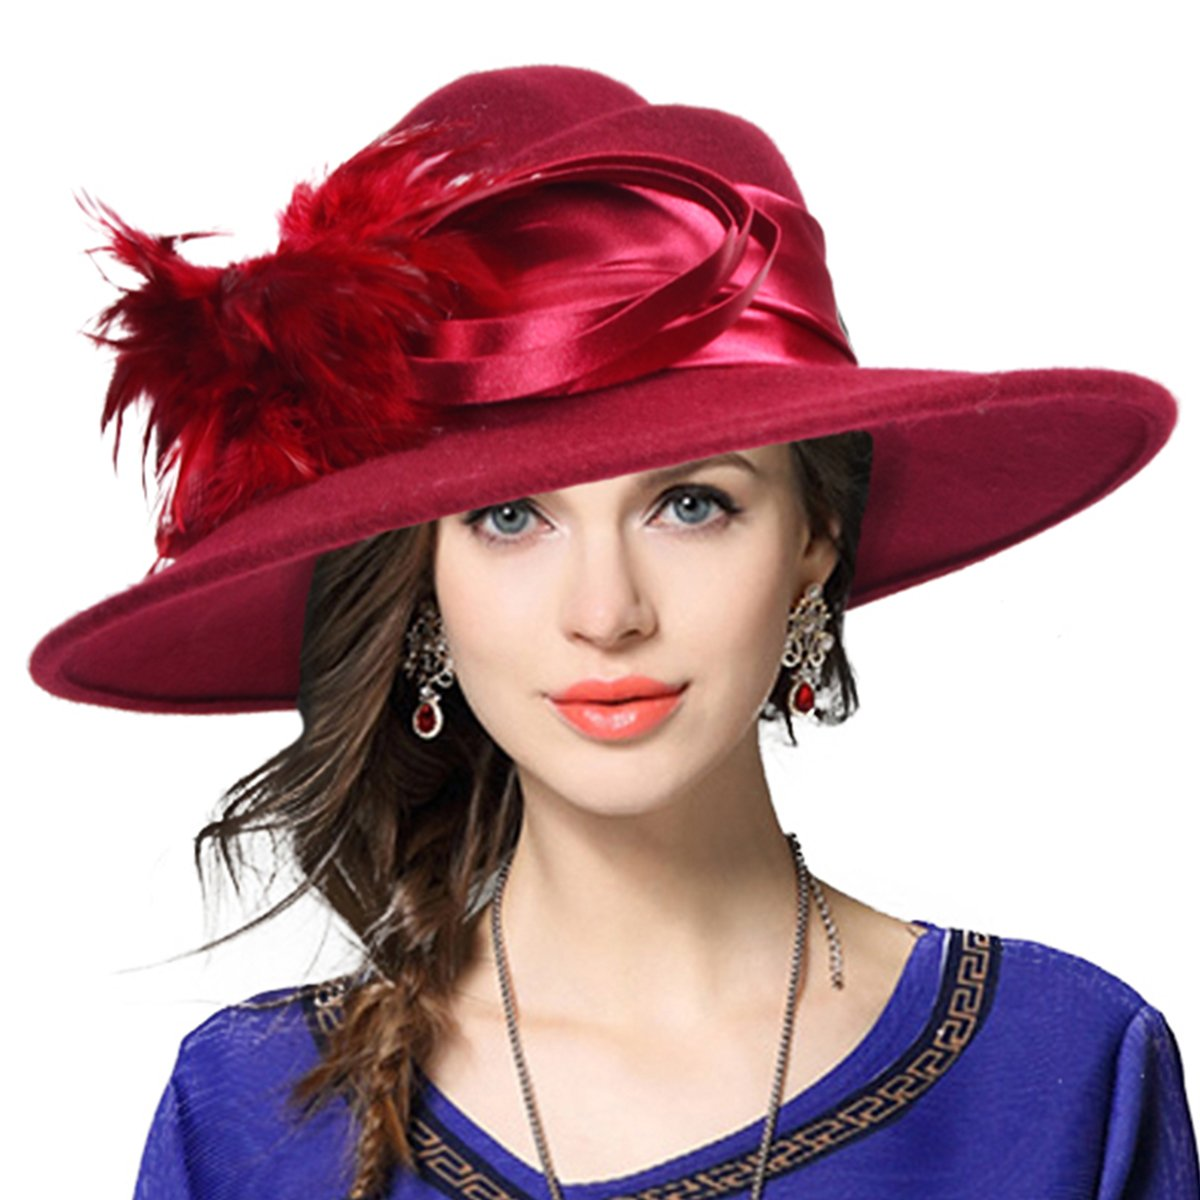 VECRY Ladies 100% Wool Felt Feather Cocktail British Formal Party Hat (Claret)